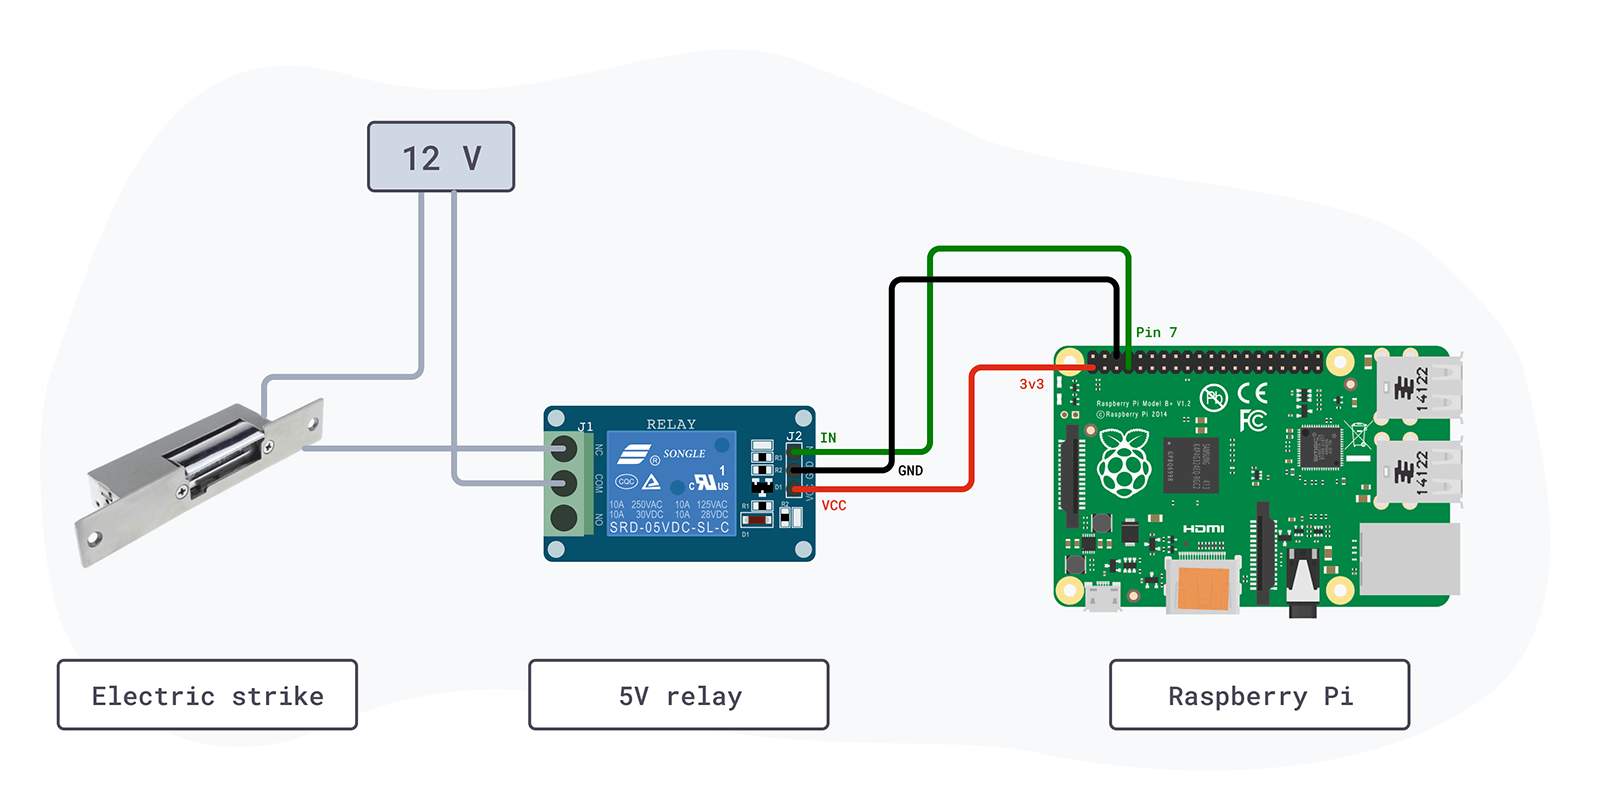 Image showing how the electric strike, the 5V relay and the Raspberry Pi interact with each other.